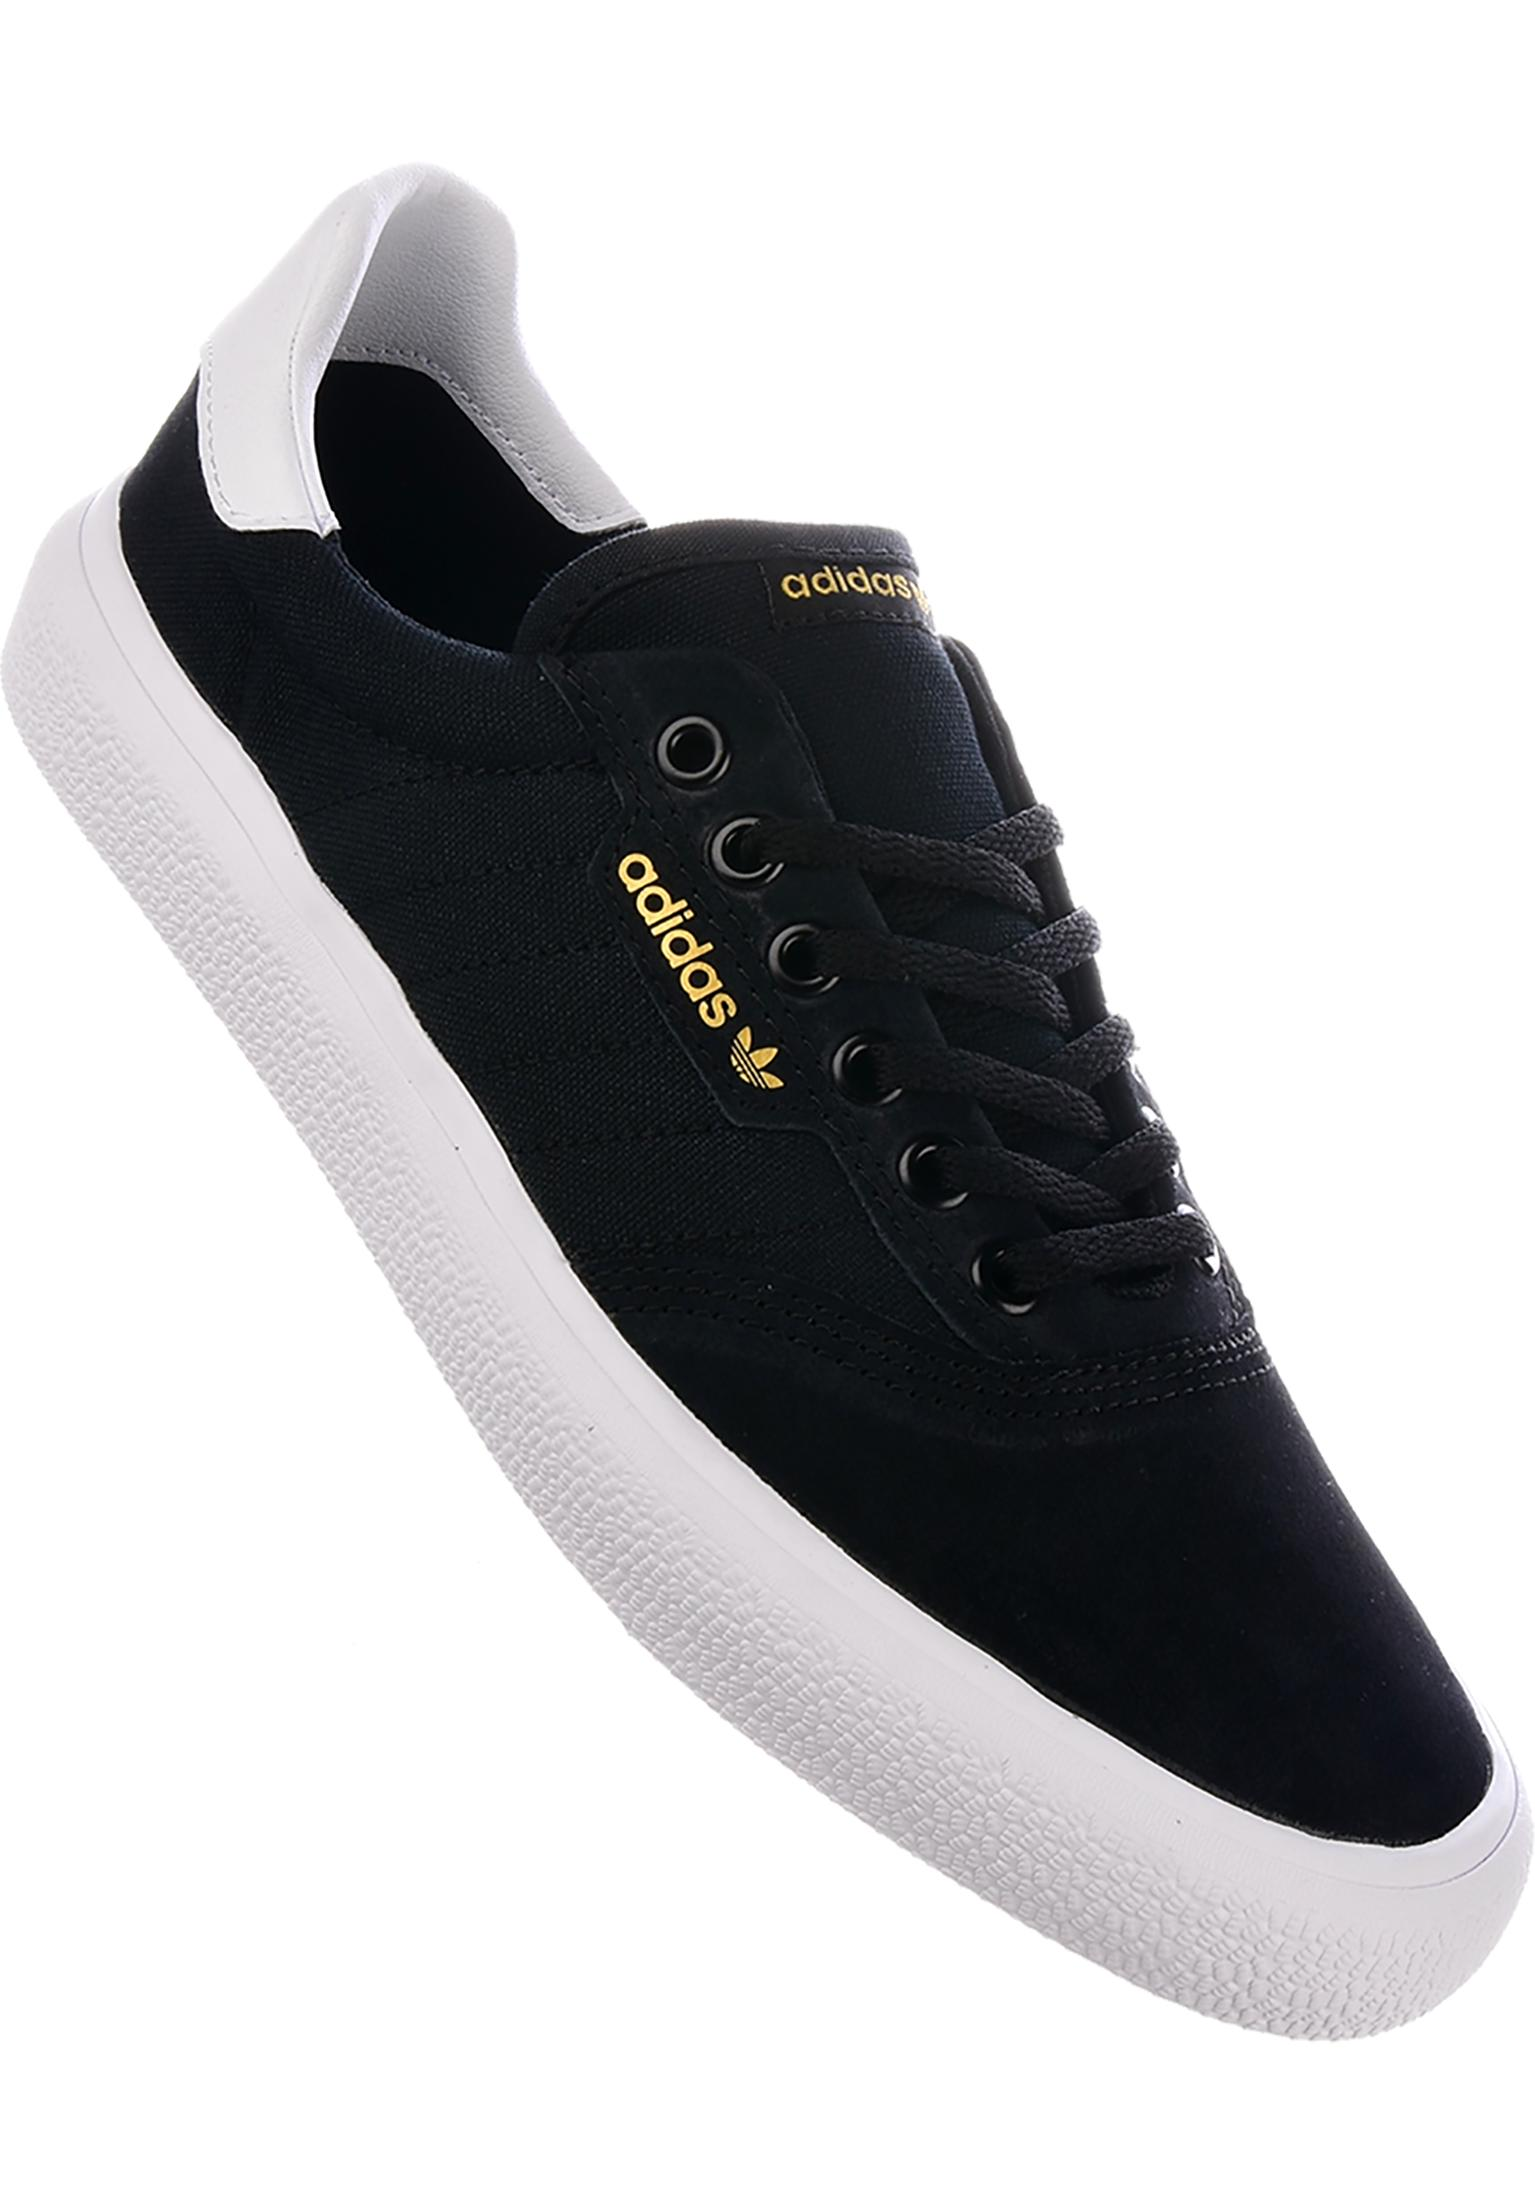 pretty nice f4c9d 12aad 3MC adidas-skateboarding All Shoes in coreblack-white for Me